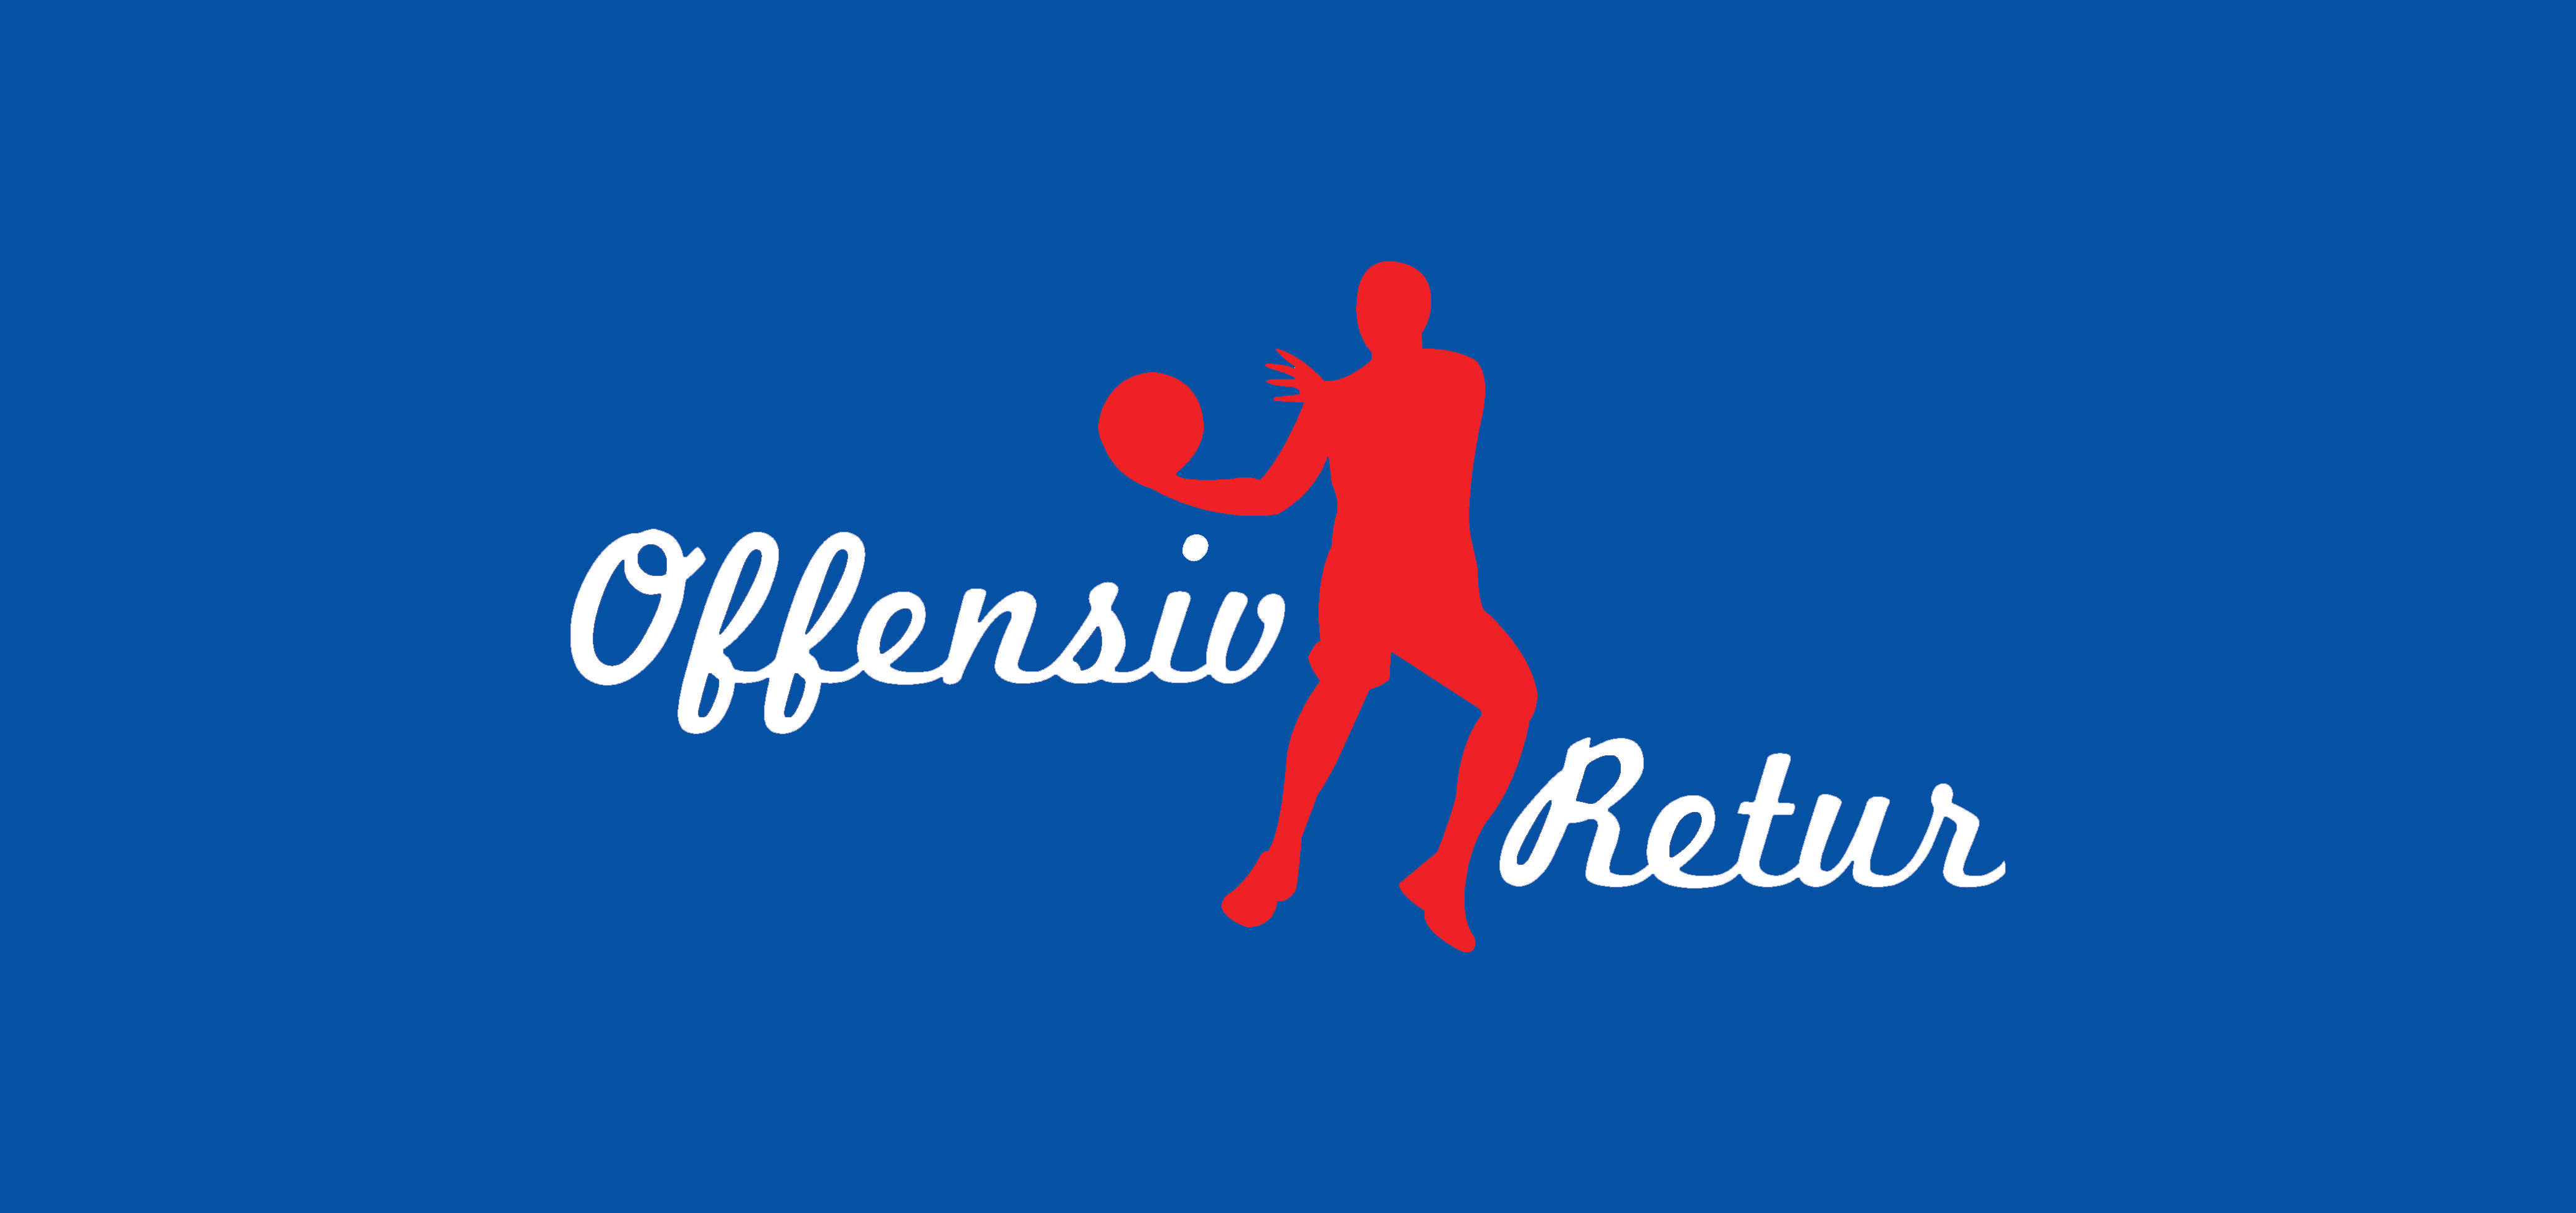 Offensiv Retur: desember 2016